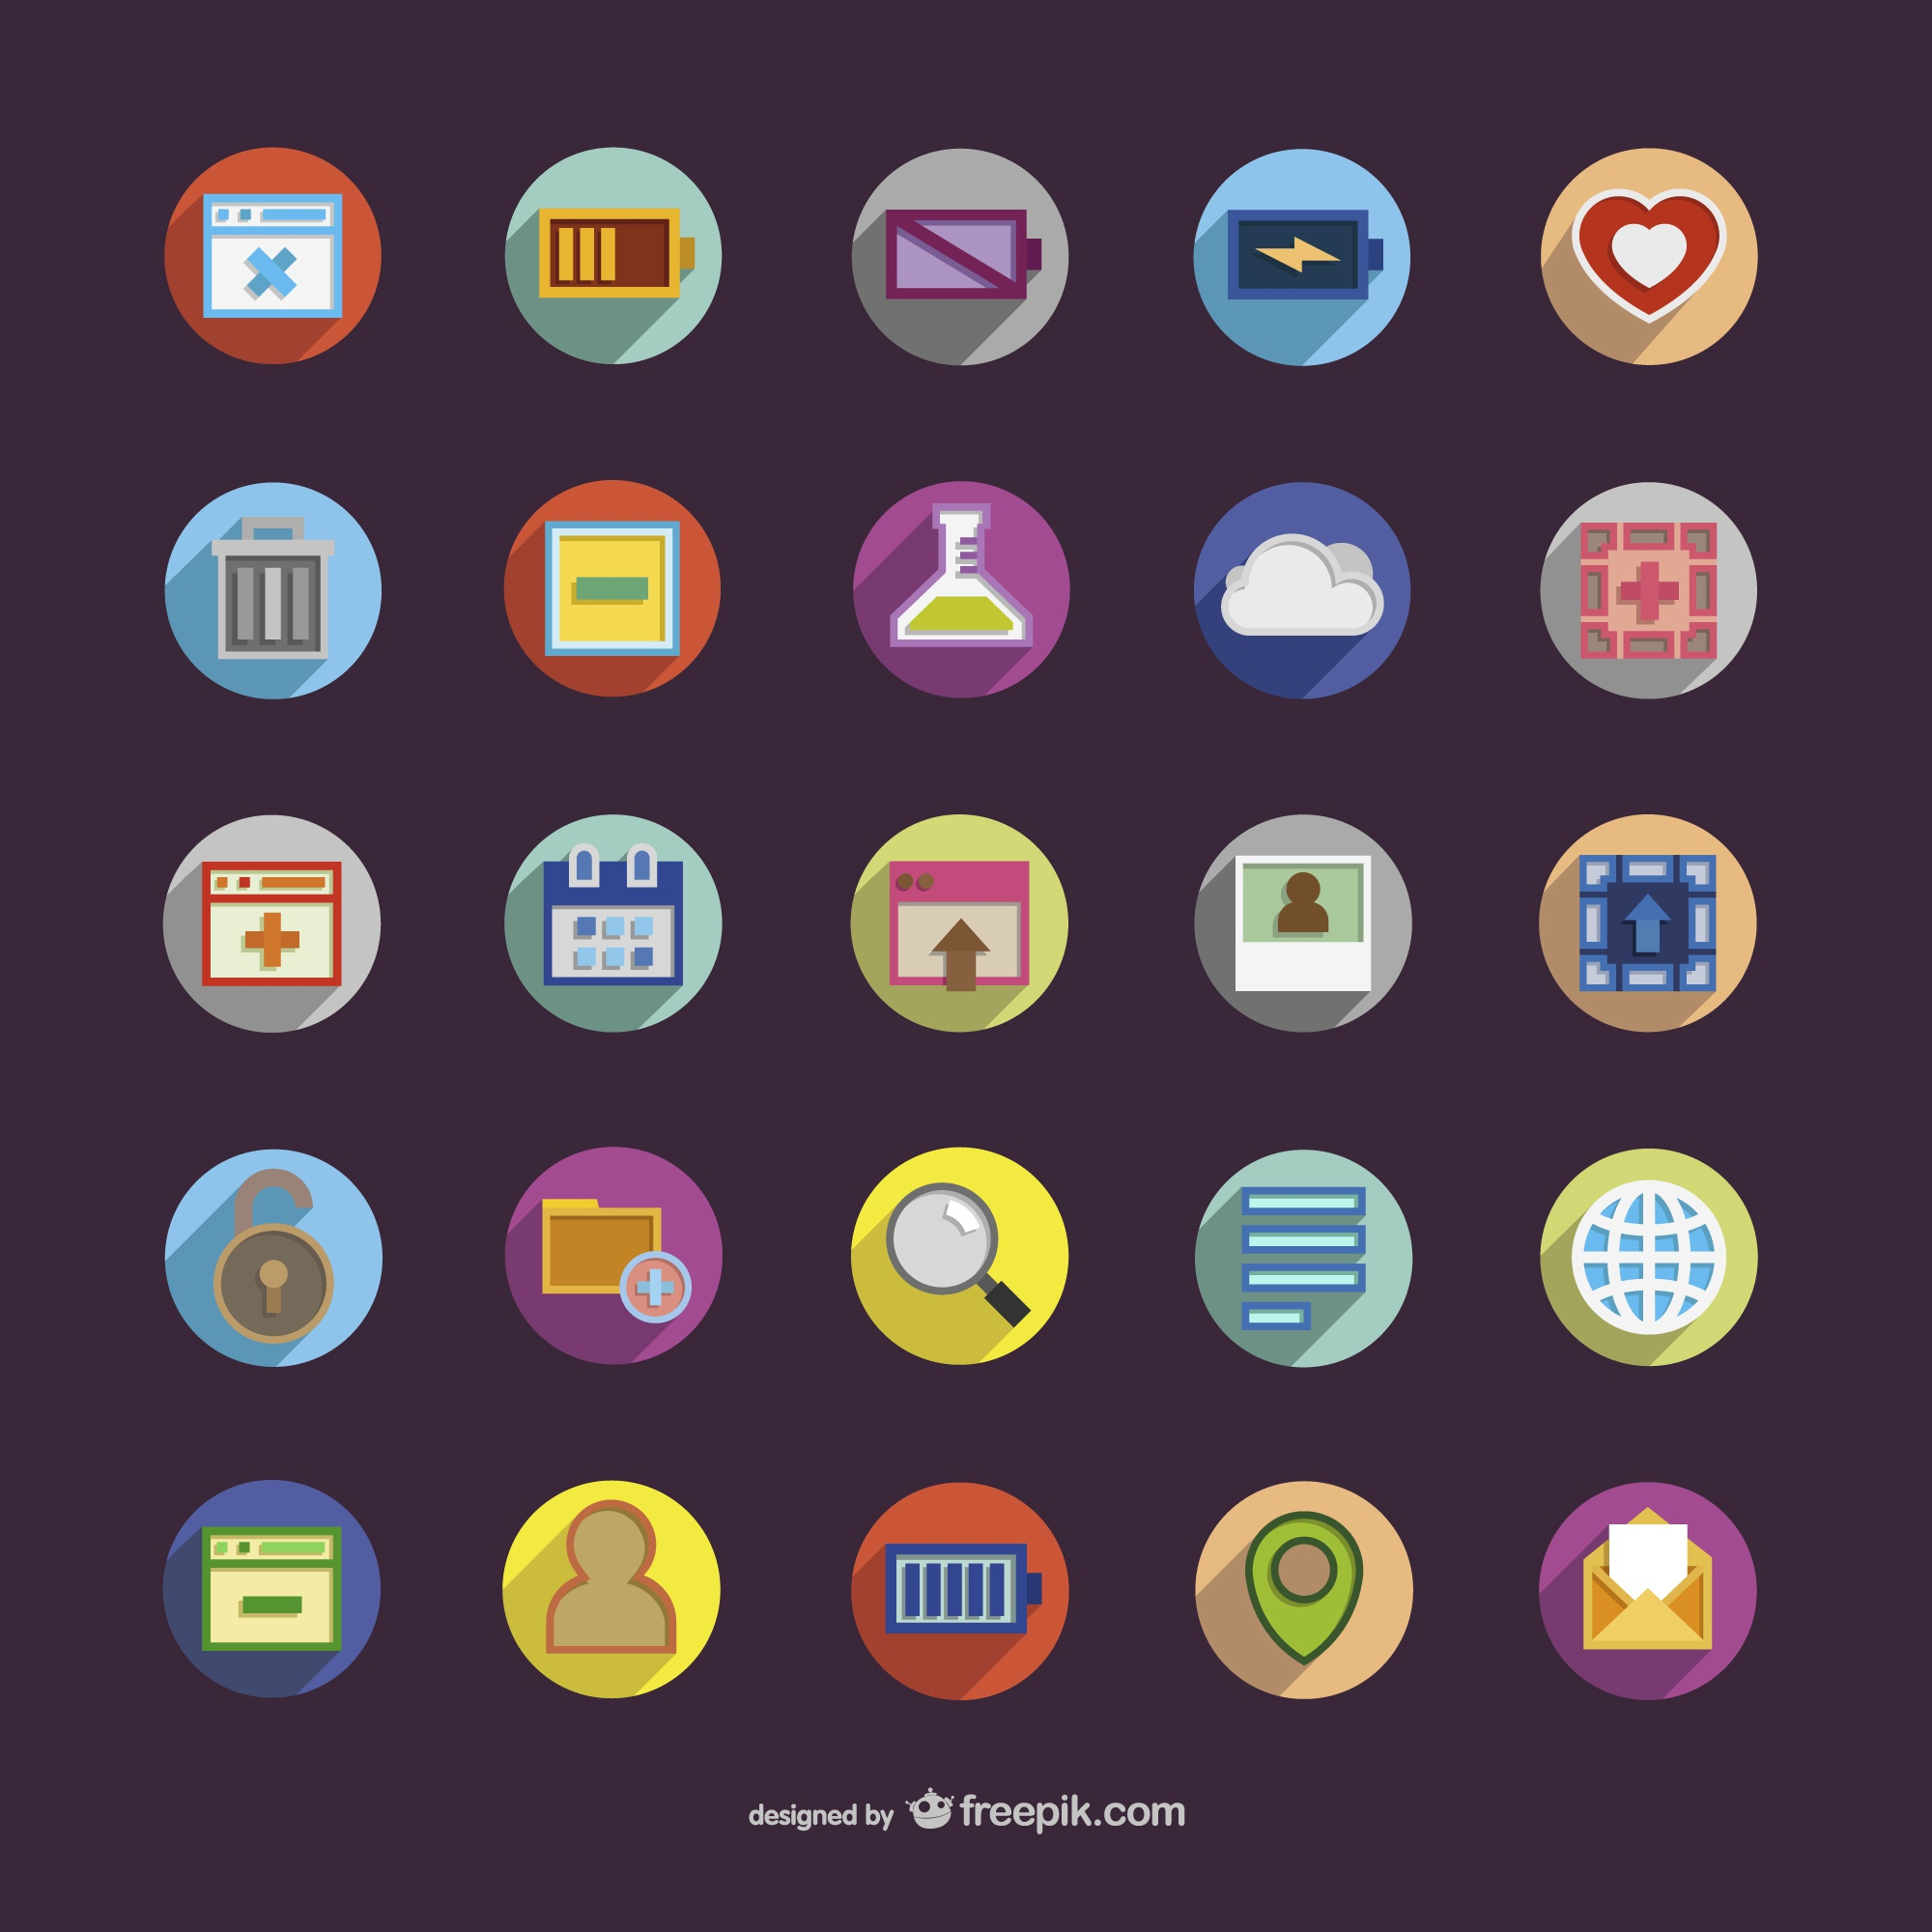 Round icons with colors